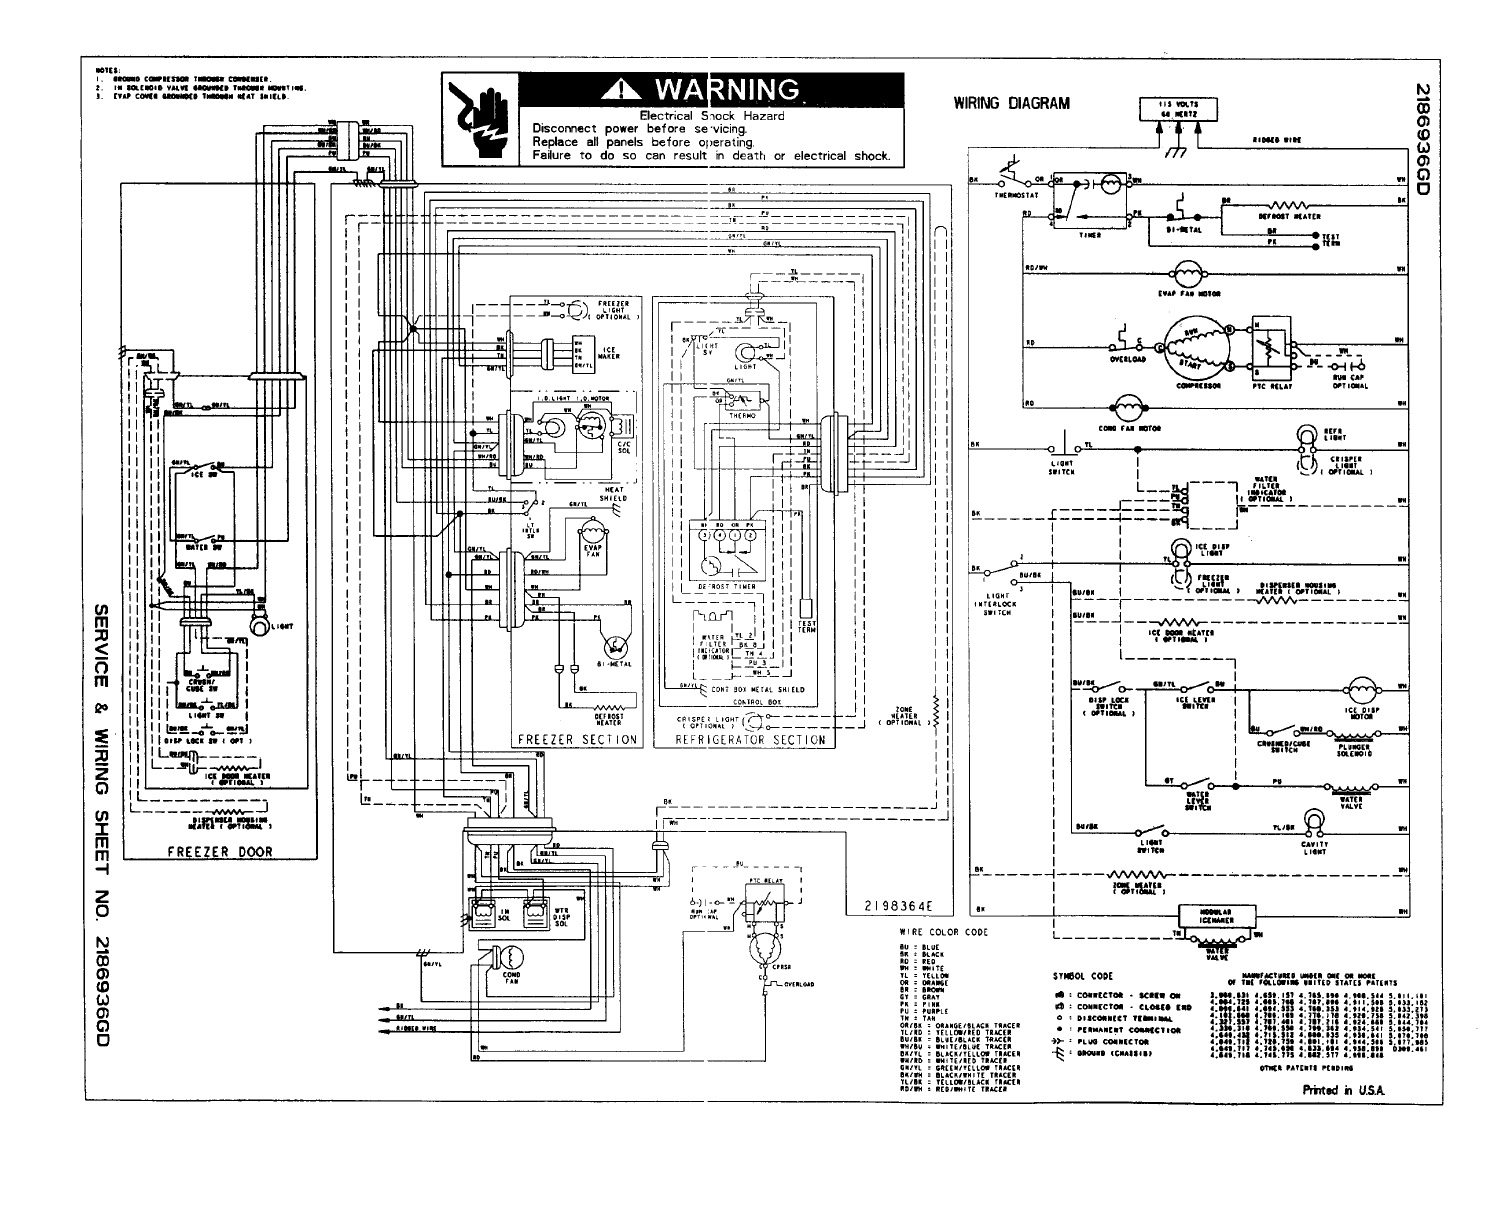 kenmore side by side refrigerator wiring diagram Collection-Generous Kenmore Refrigerator Wiring Diagram Contemporary Best Elite 10-p